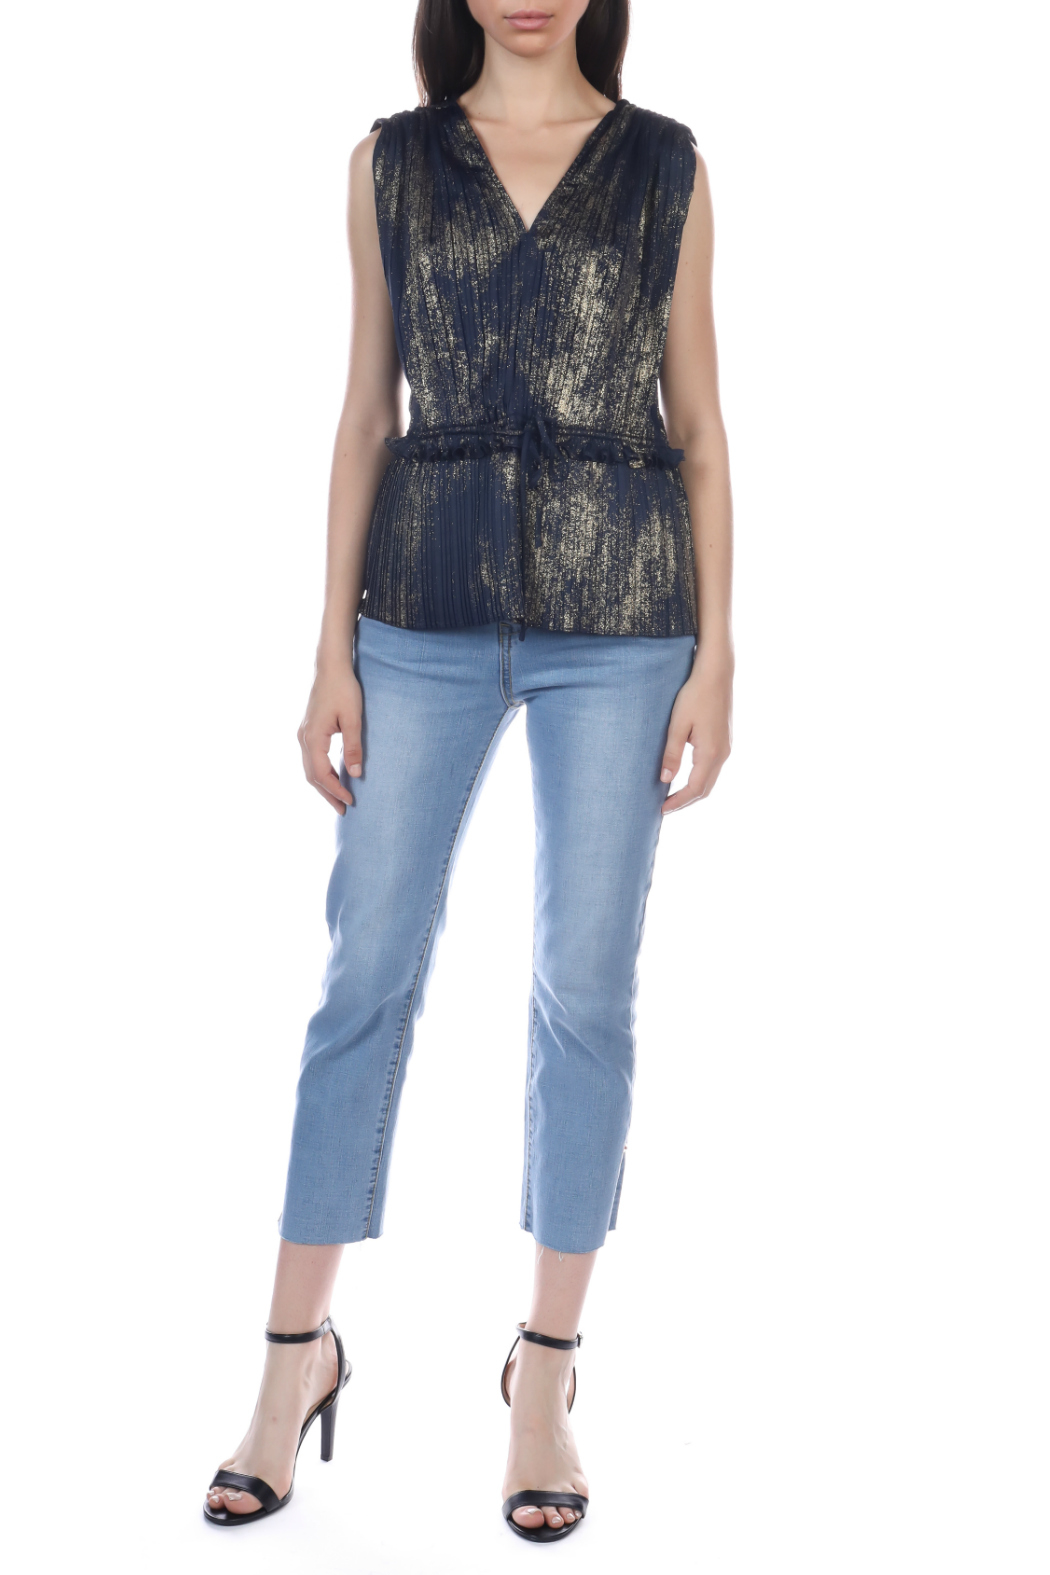 Current Air Gold foil pleated sleeveless top - Front Full Image